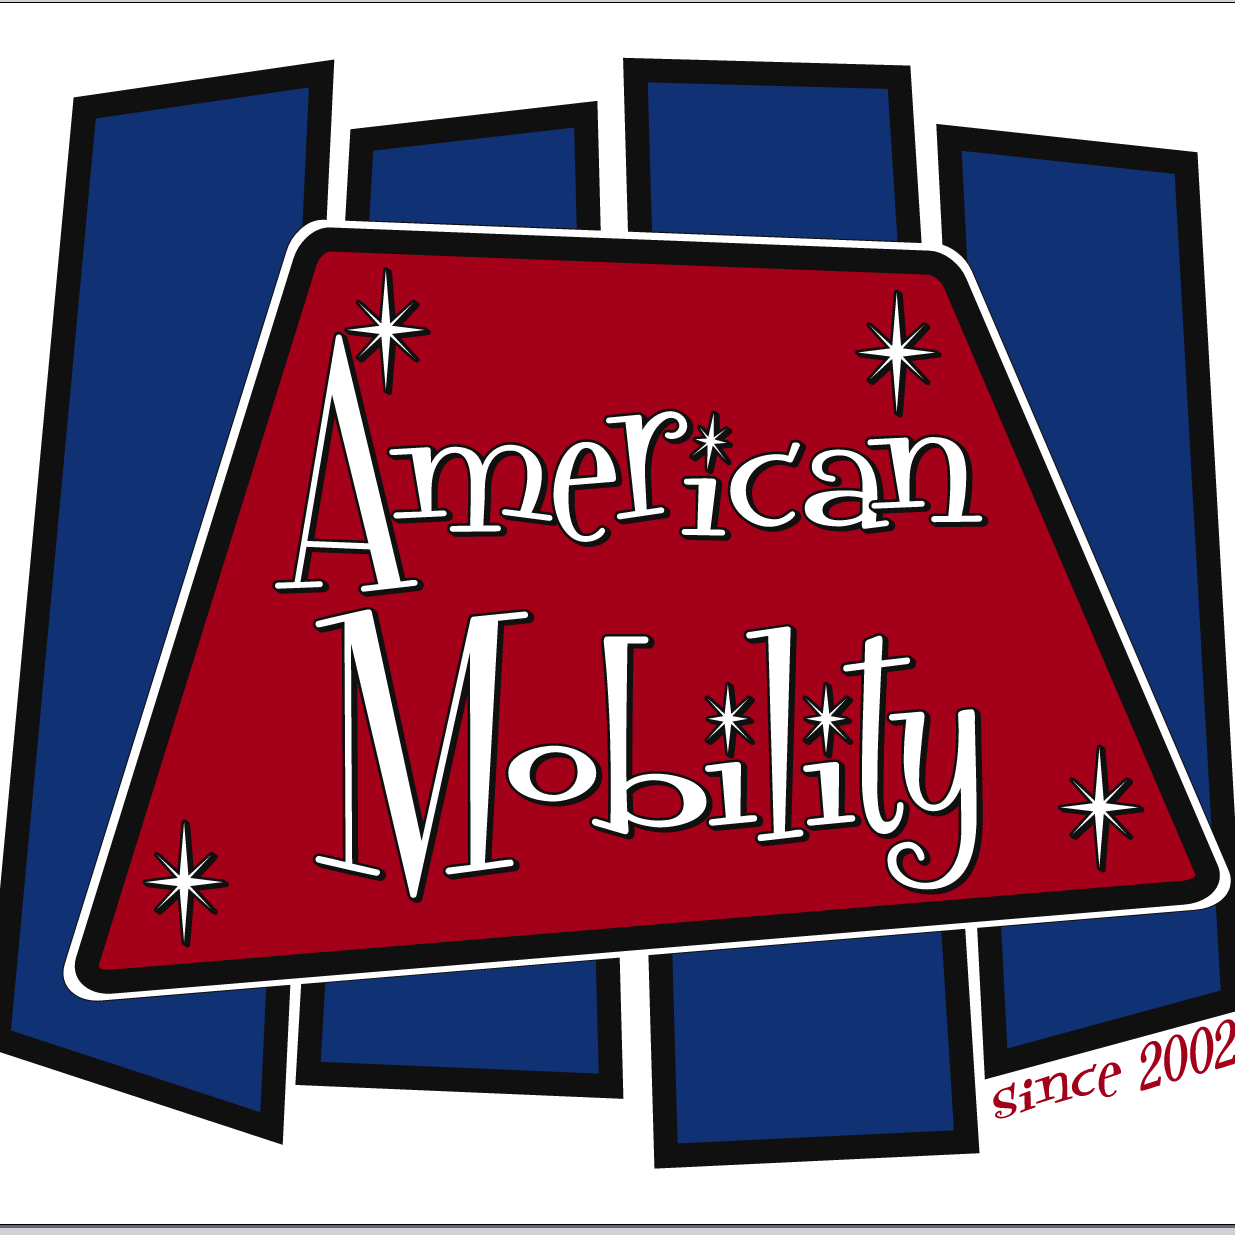 American Mobility